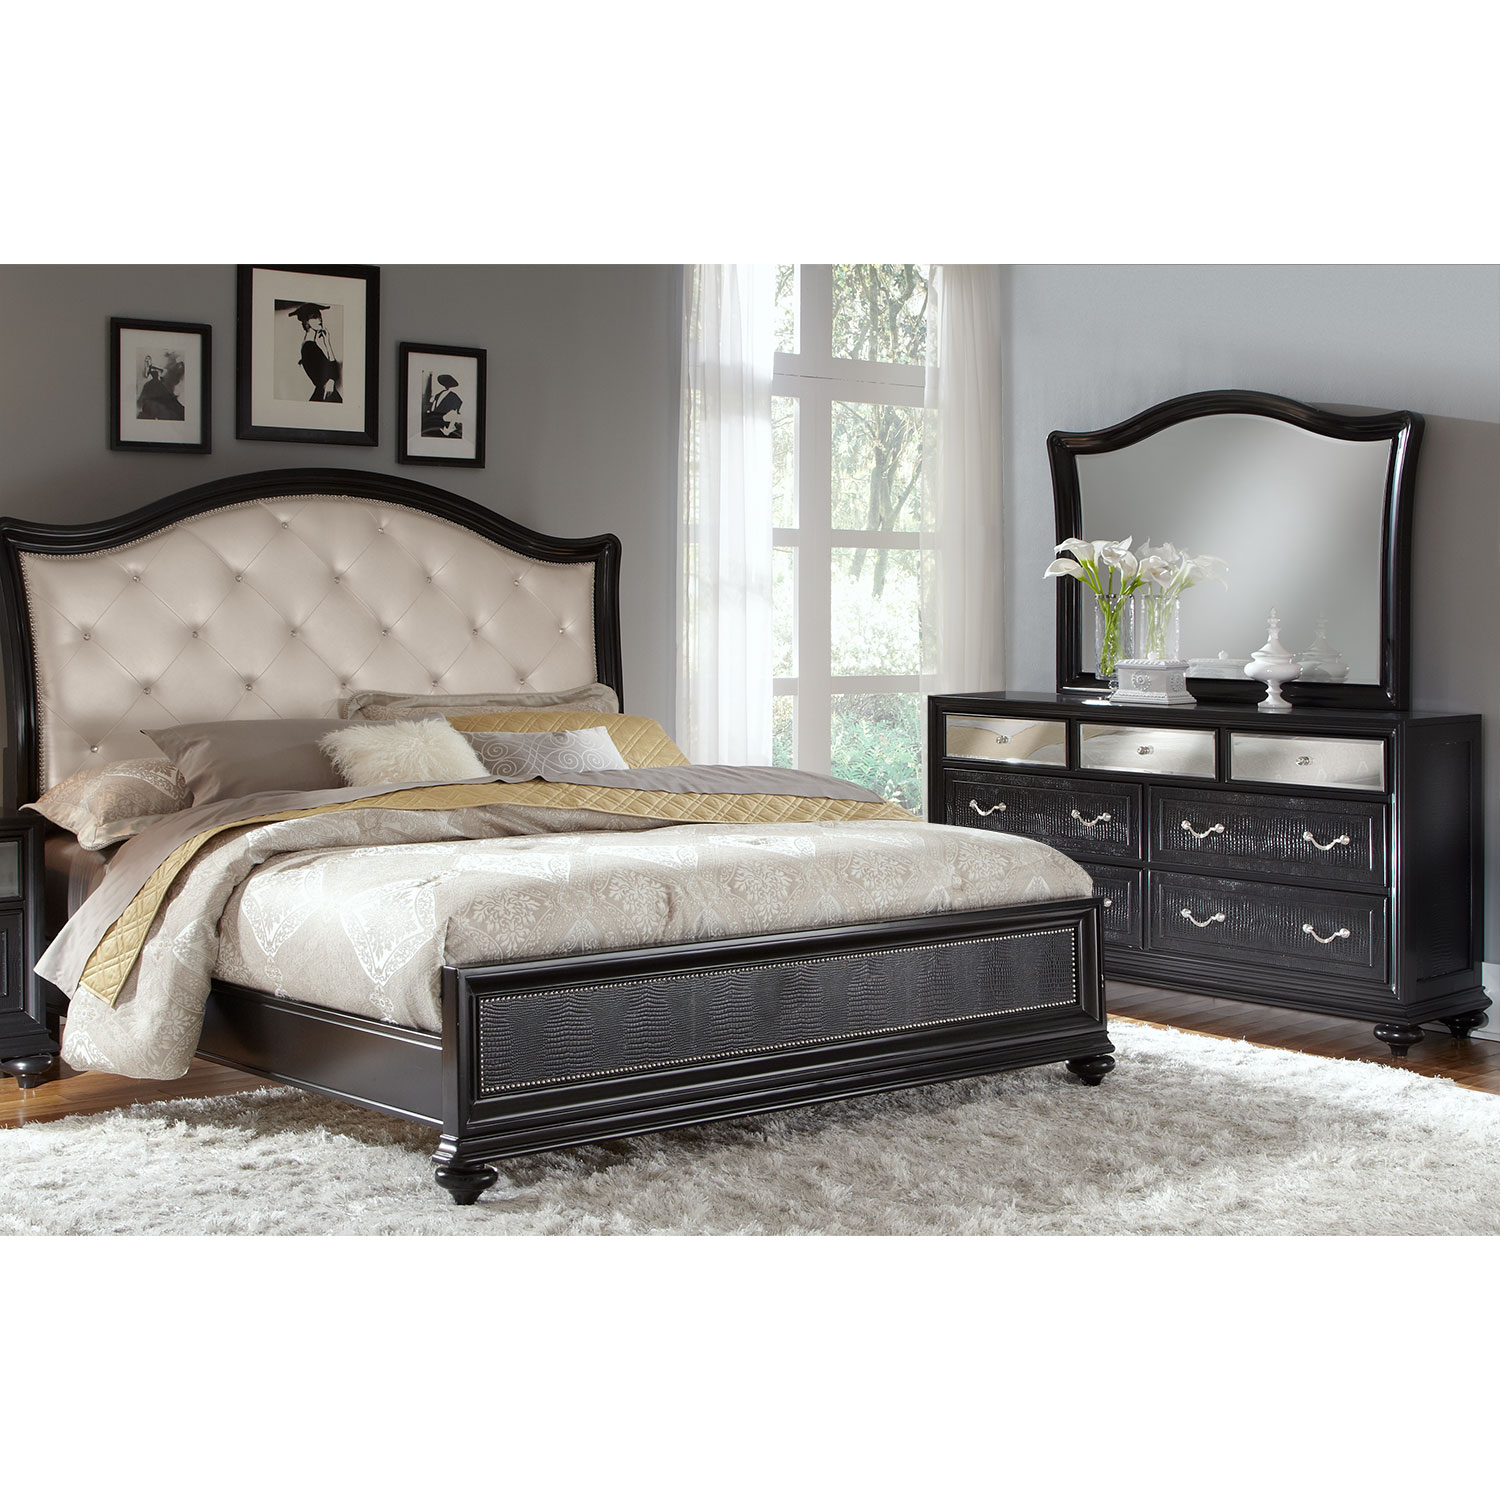 Marilyn 5-Piece Queen Bedroom Set - Ebony | Value City Furniture